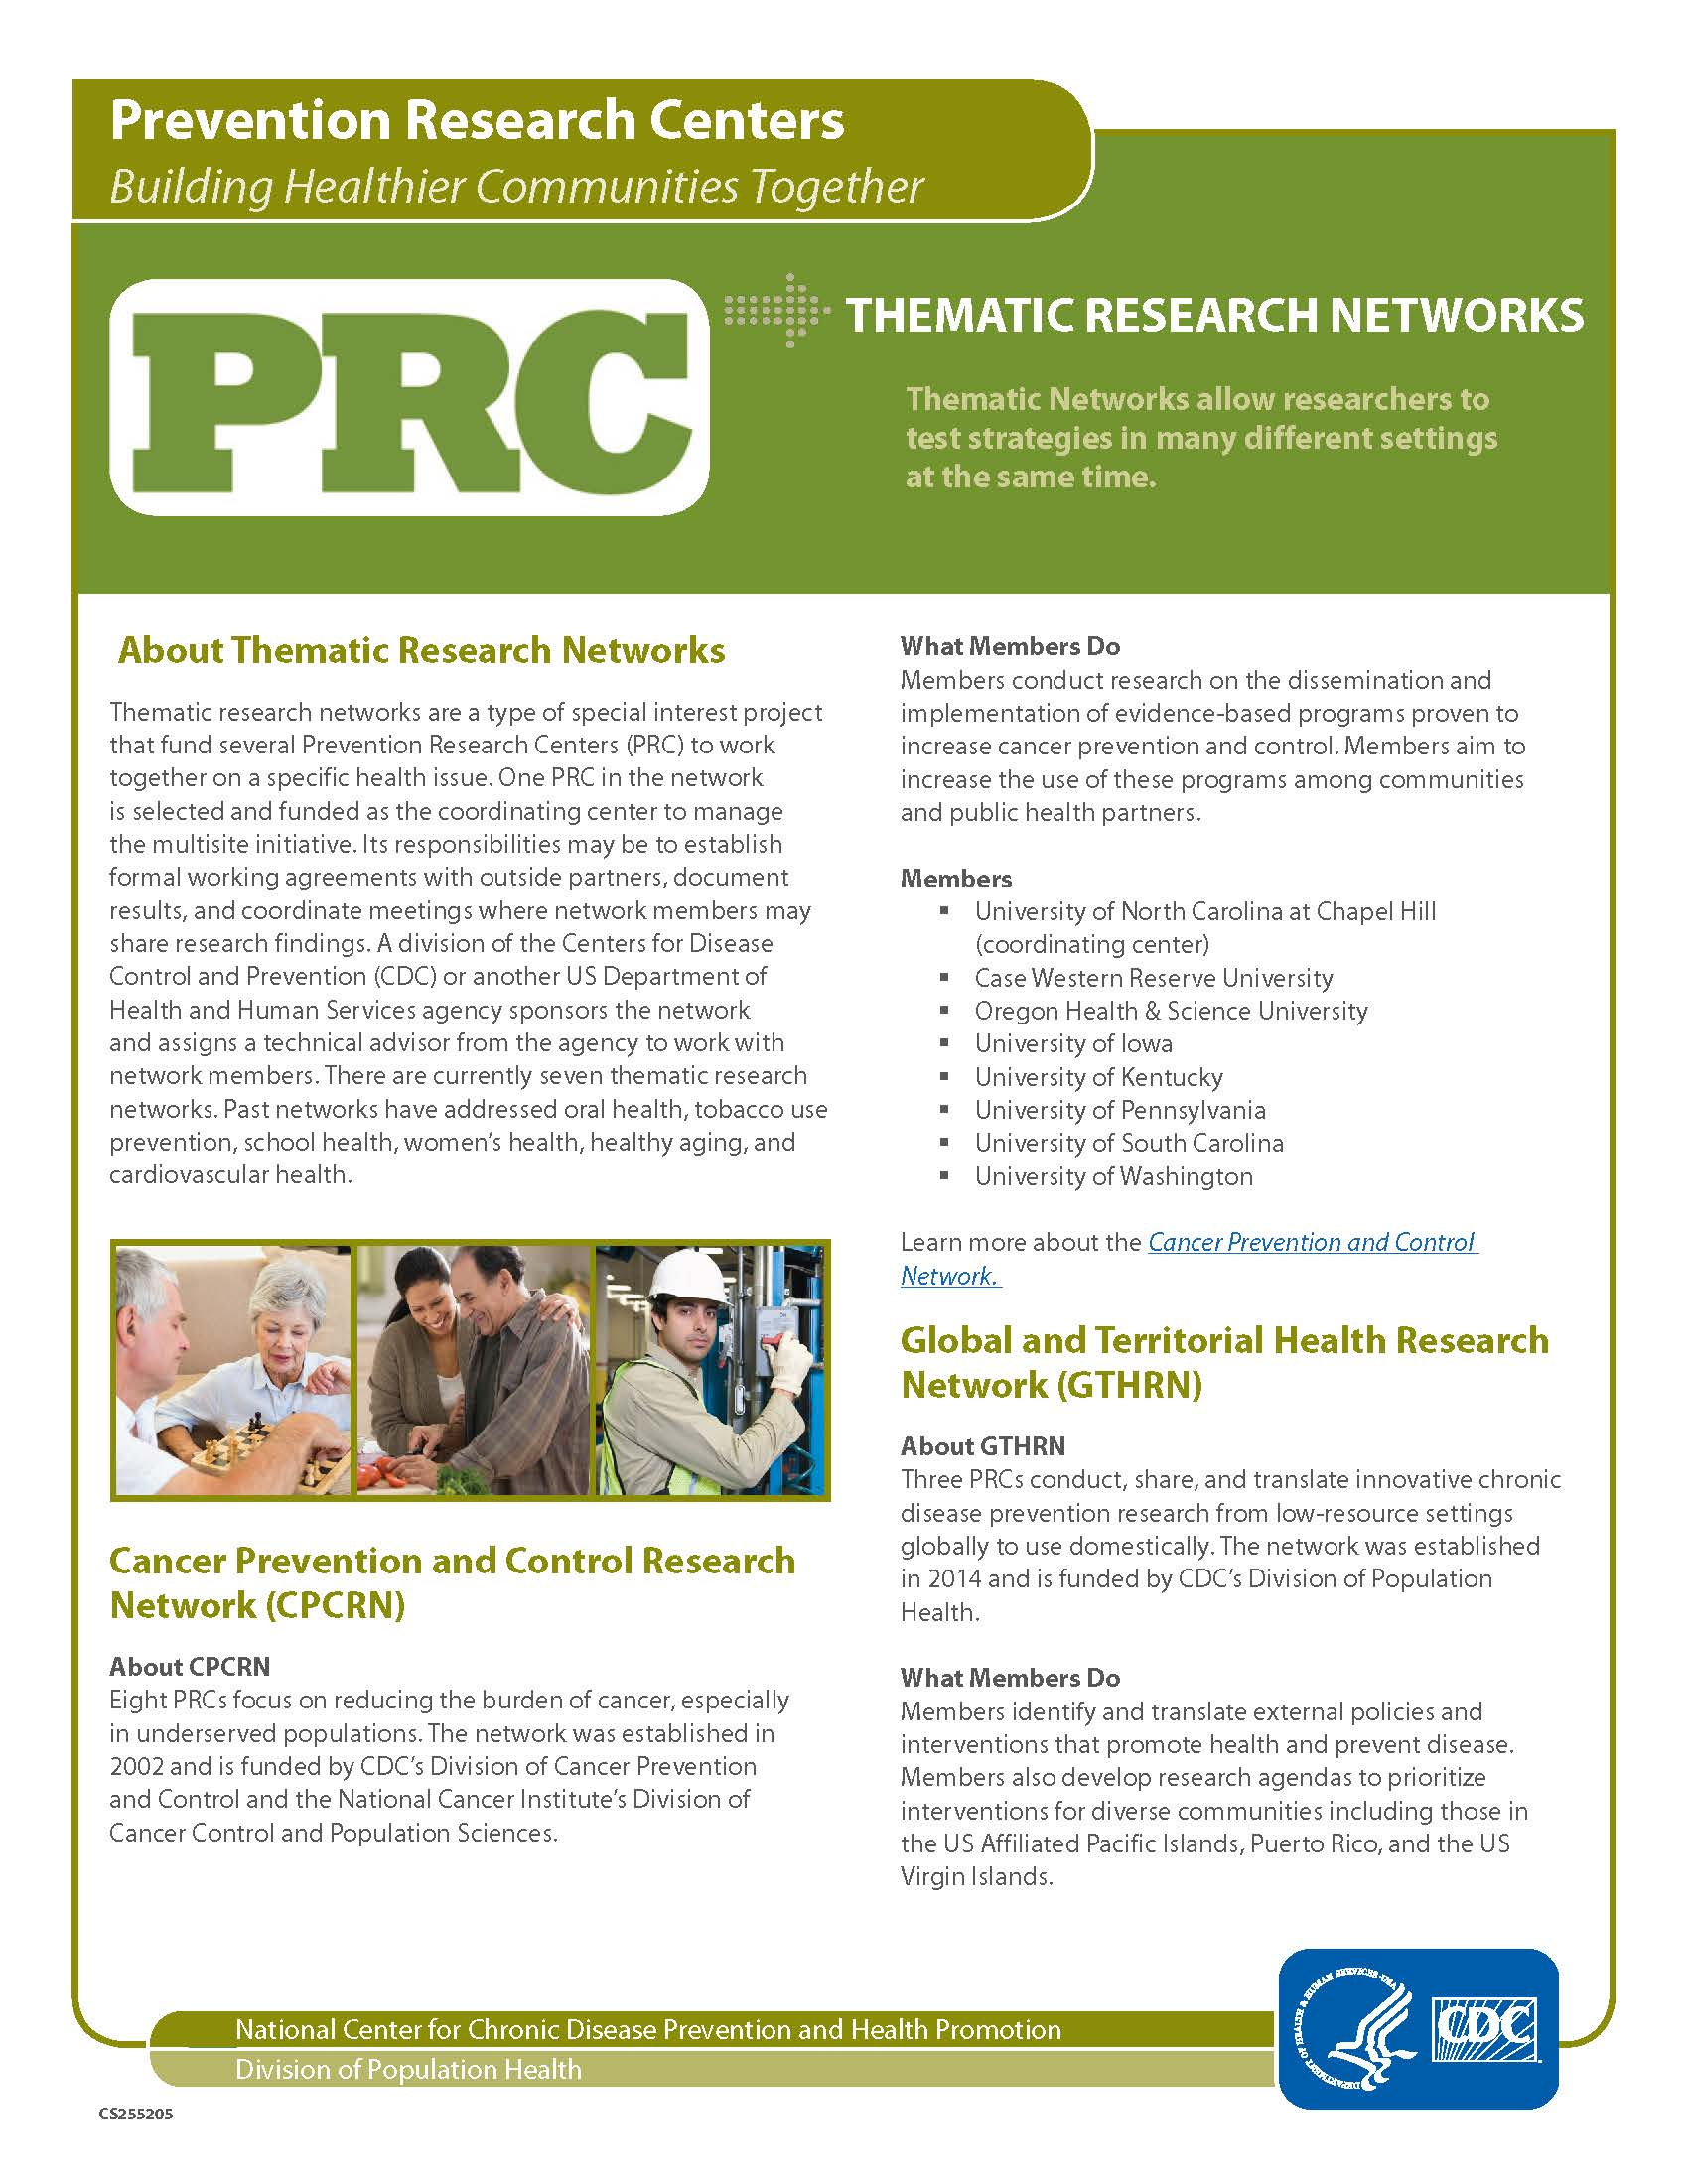 PRC Thematic Research Networks Fact Sheet